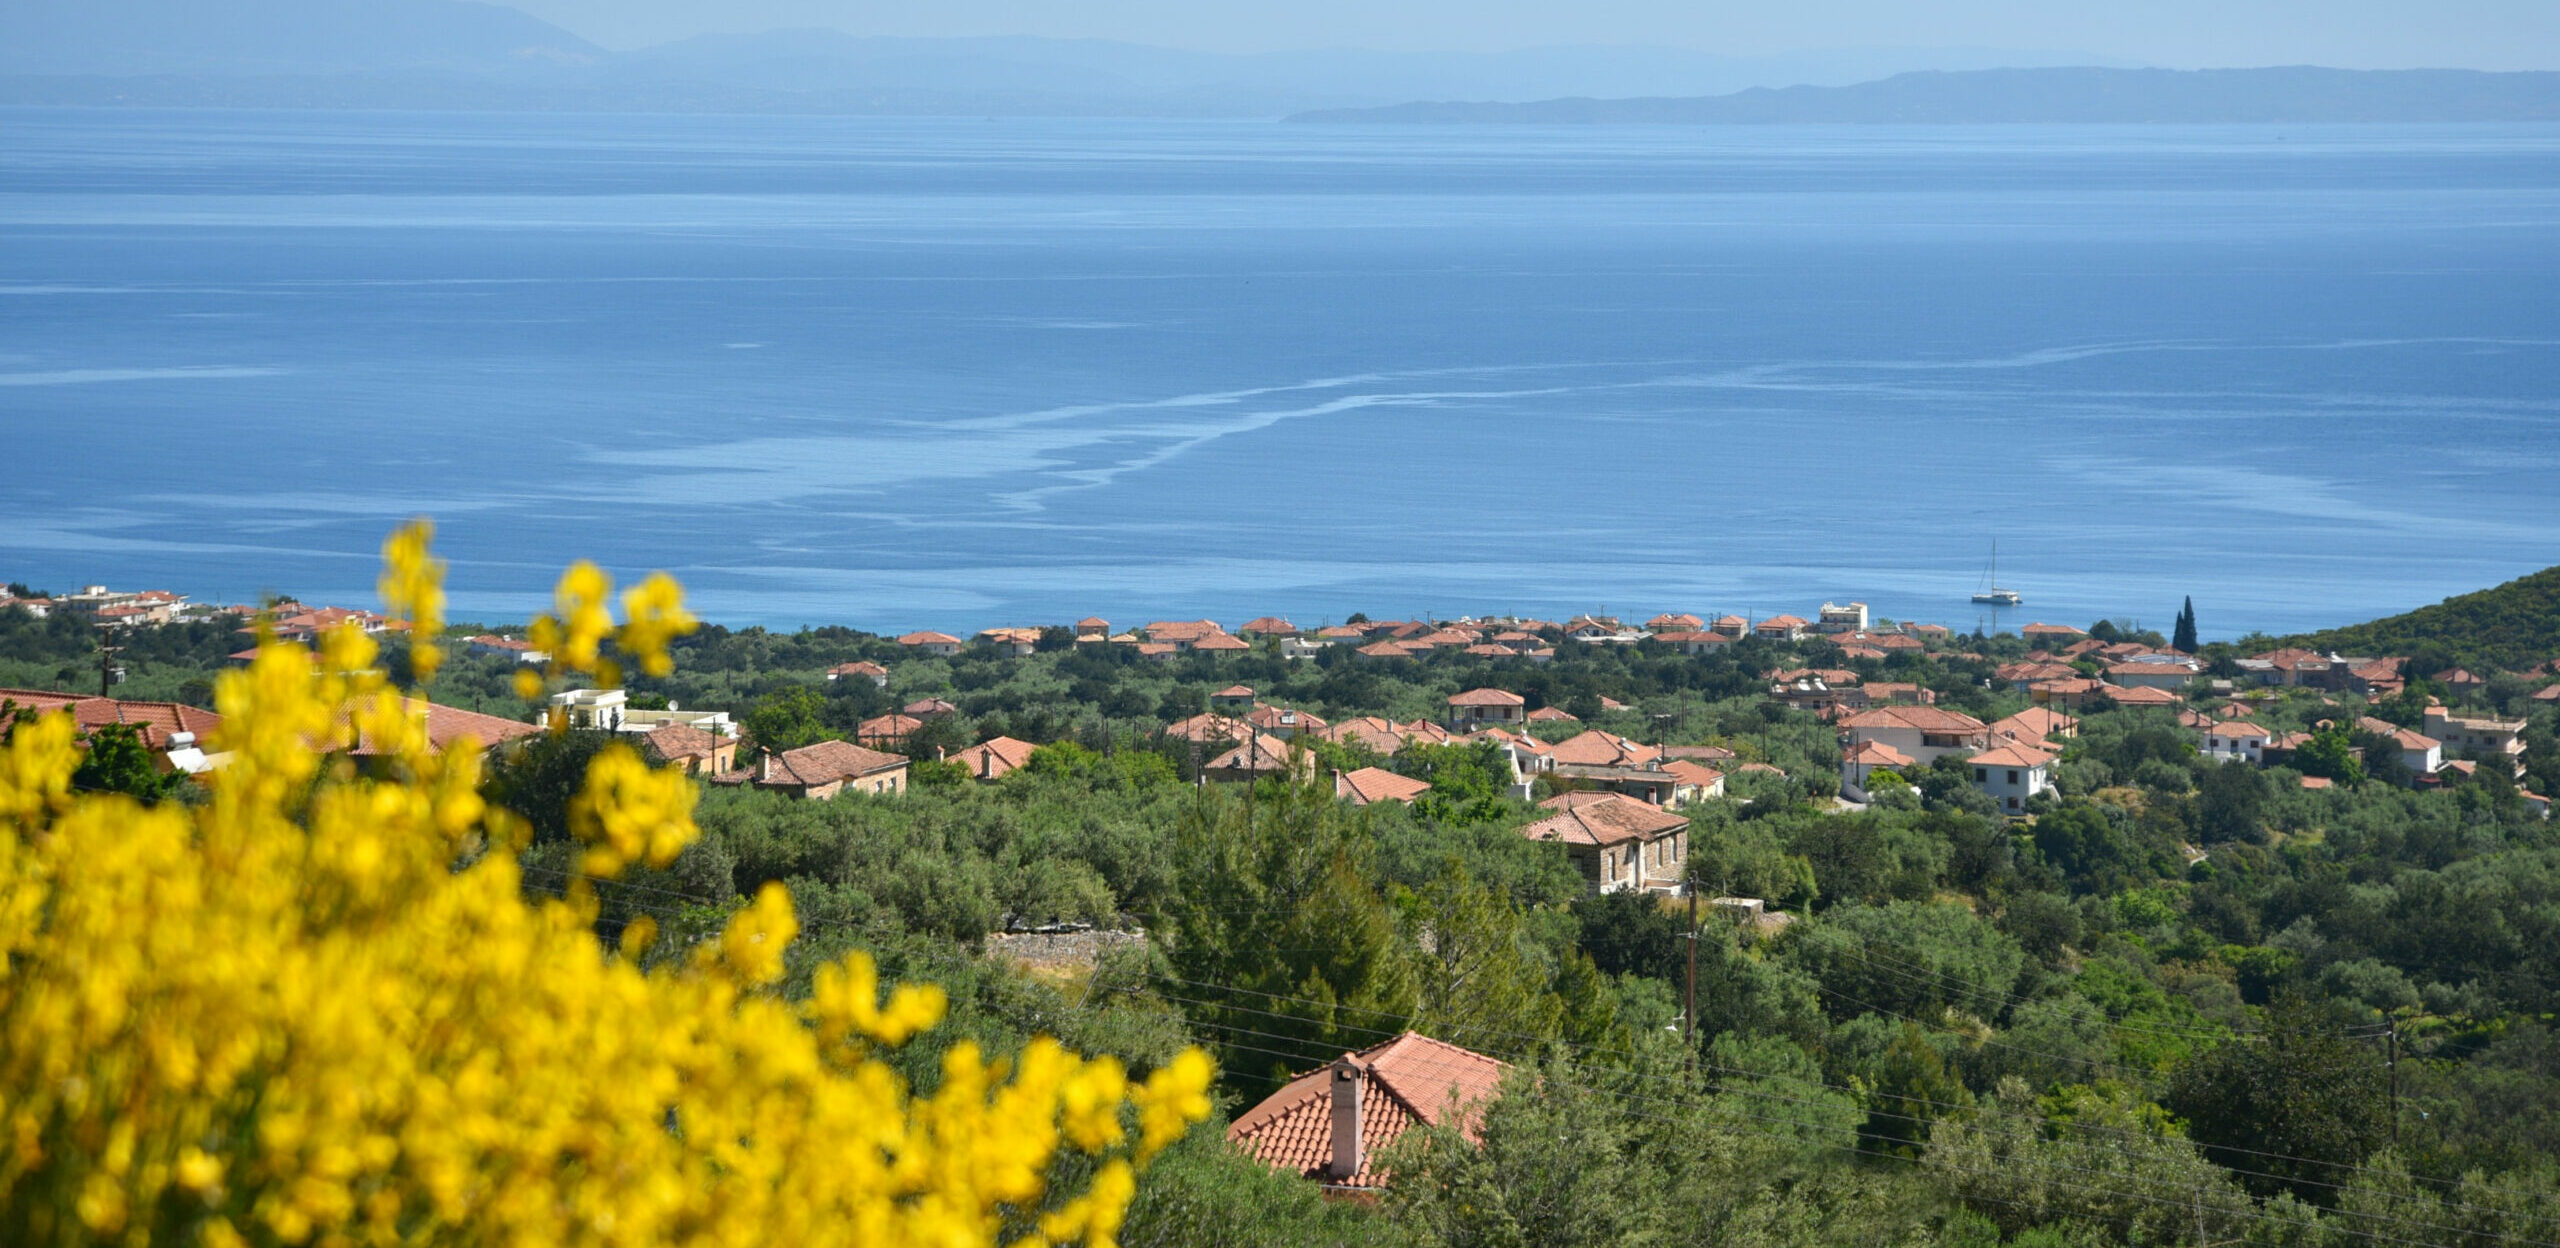 Poulithra: The perfect destination if you want to be away from everyone